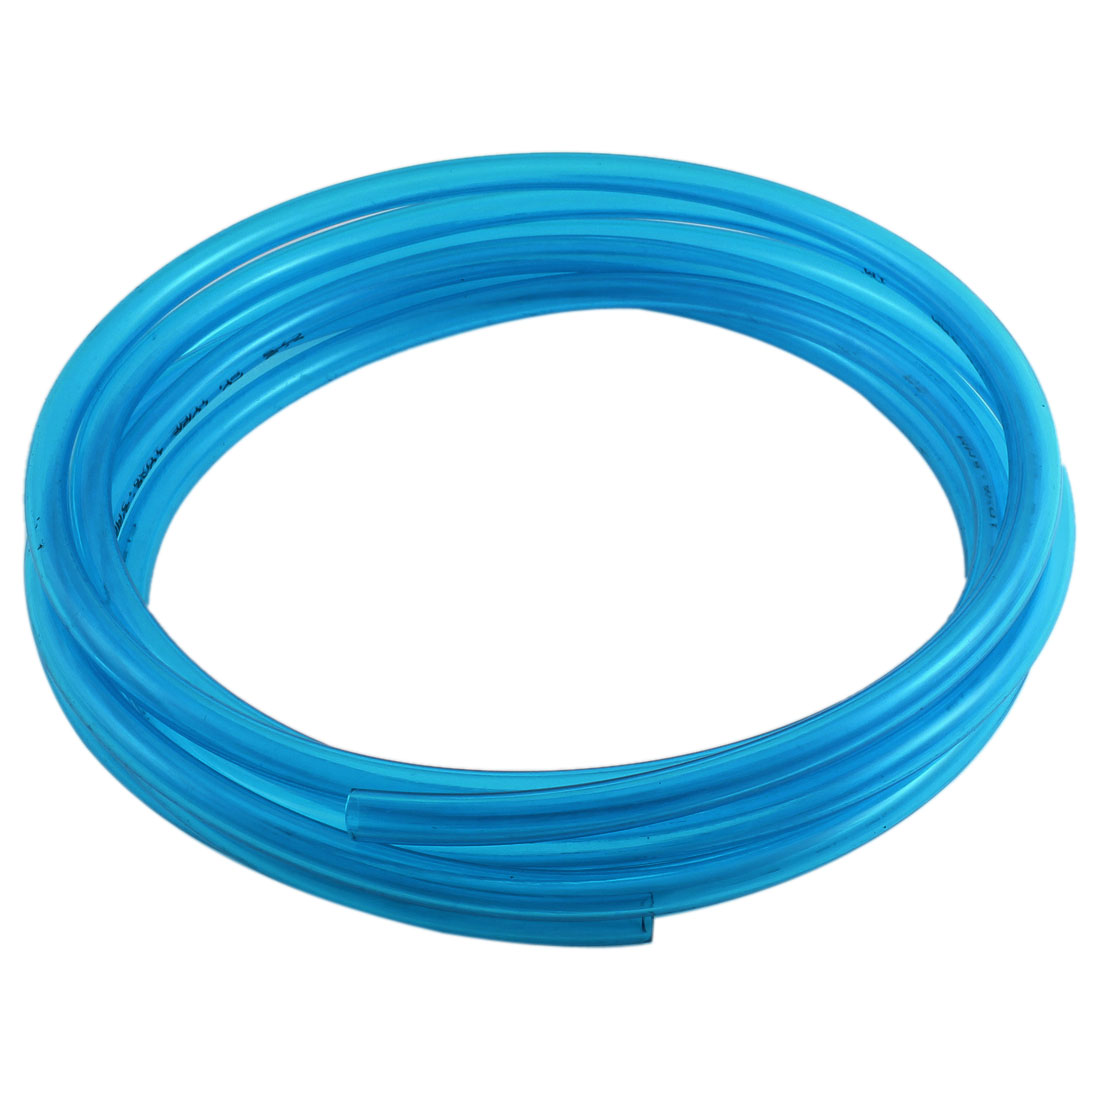 10mm OD 6.5mm ID 4M 13Ft Long Pneumatic Air PU Hose Pipe Tube Clear Blue